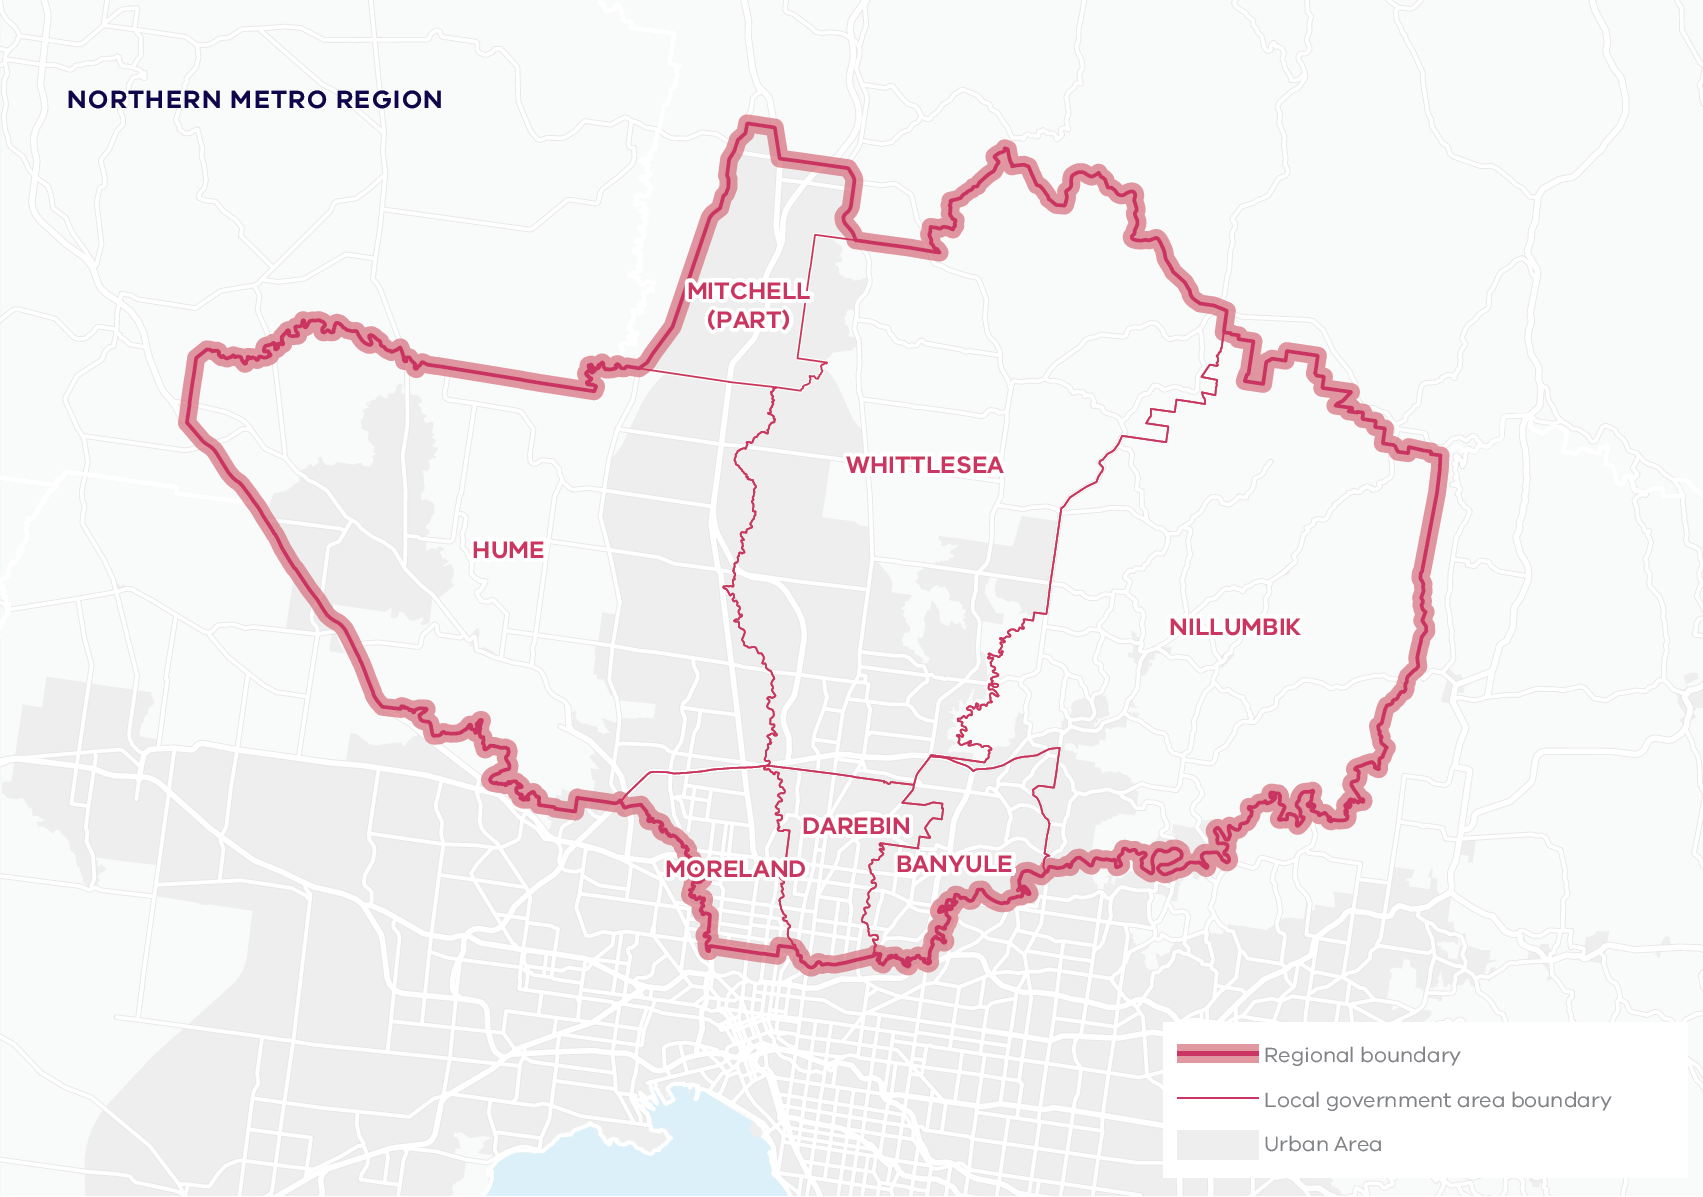 This map shows the boundary for the Northern Metro region and local government areas. The Northern Metro region includes Banyule, Darebin, Hume, Mitchell, Moreland, Nillumbik and Whittlesea local government areas.